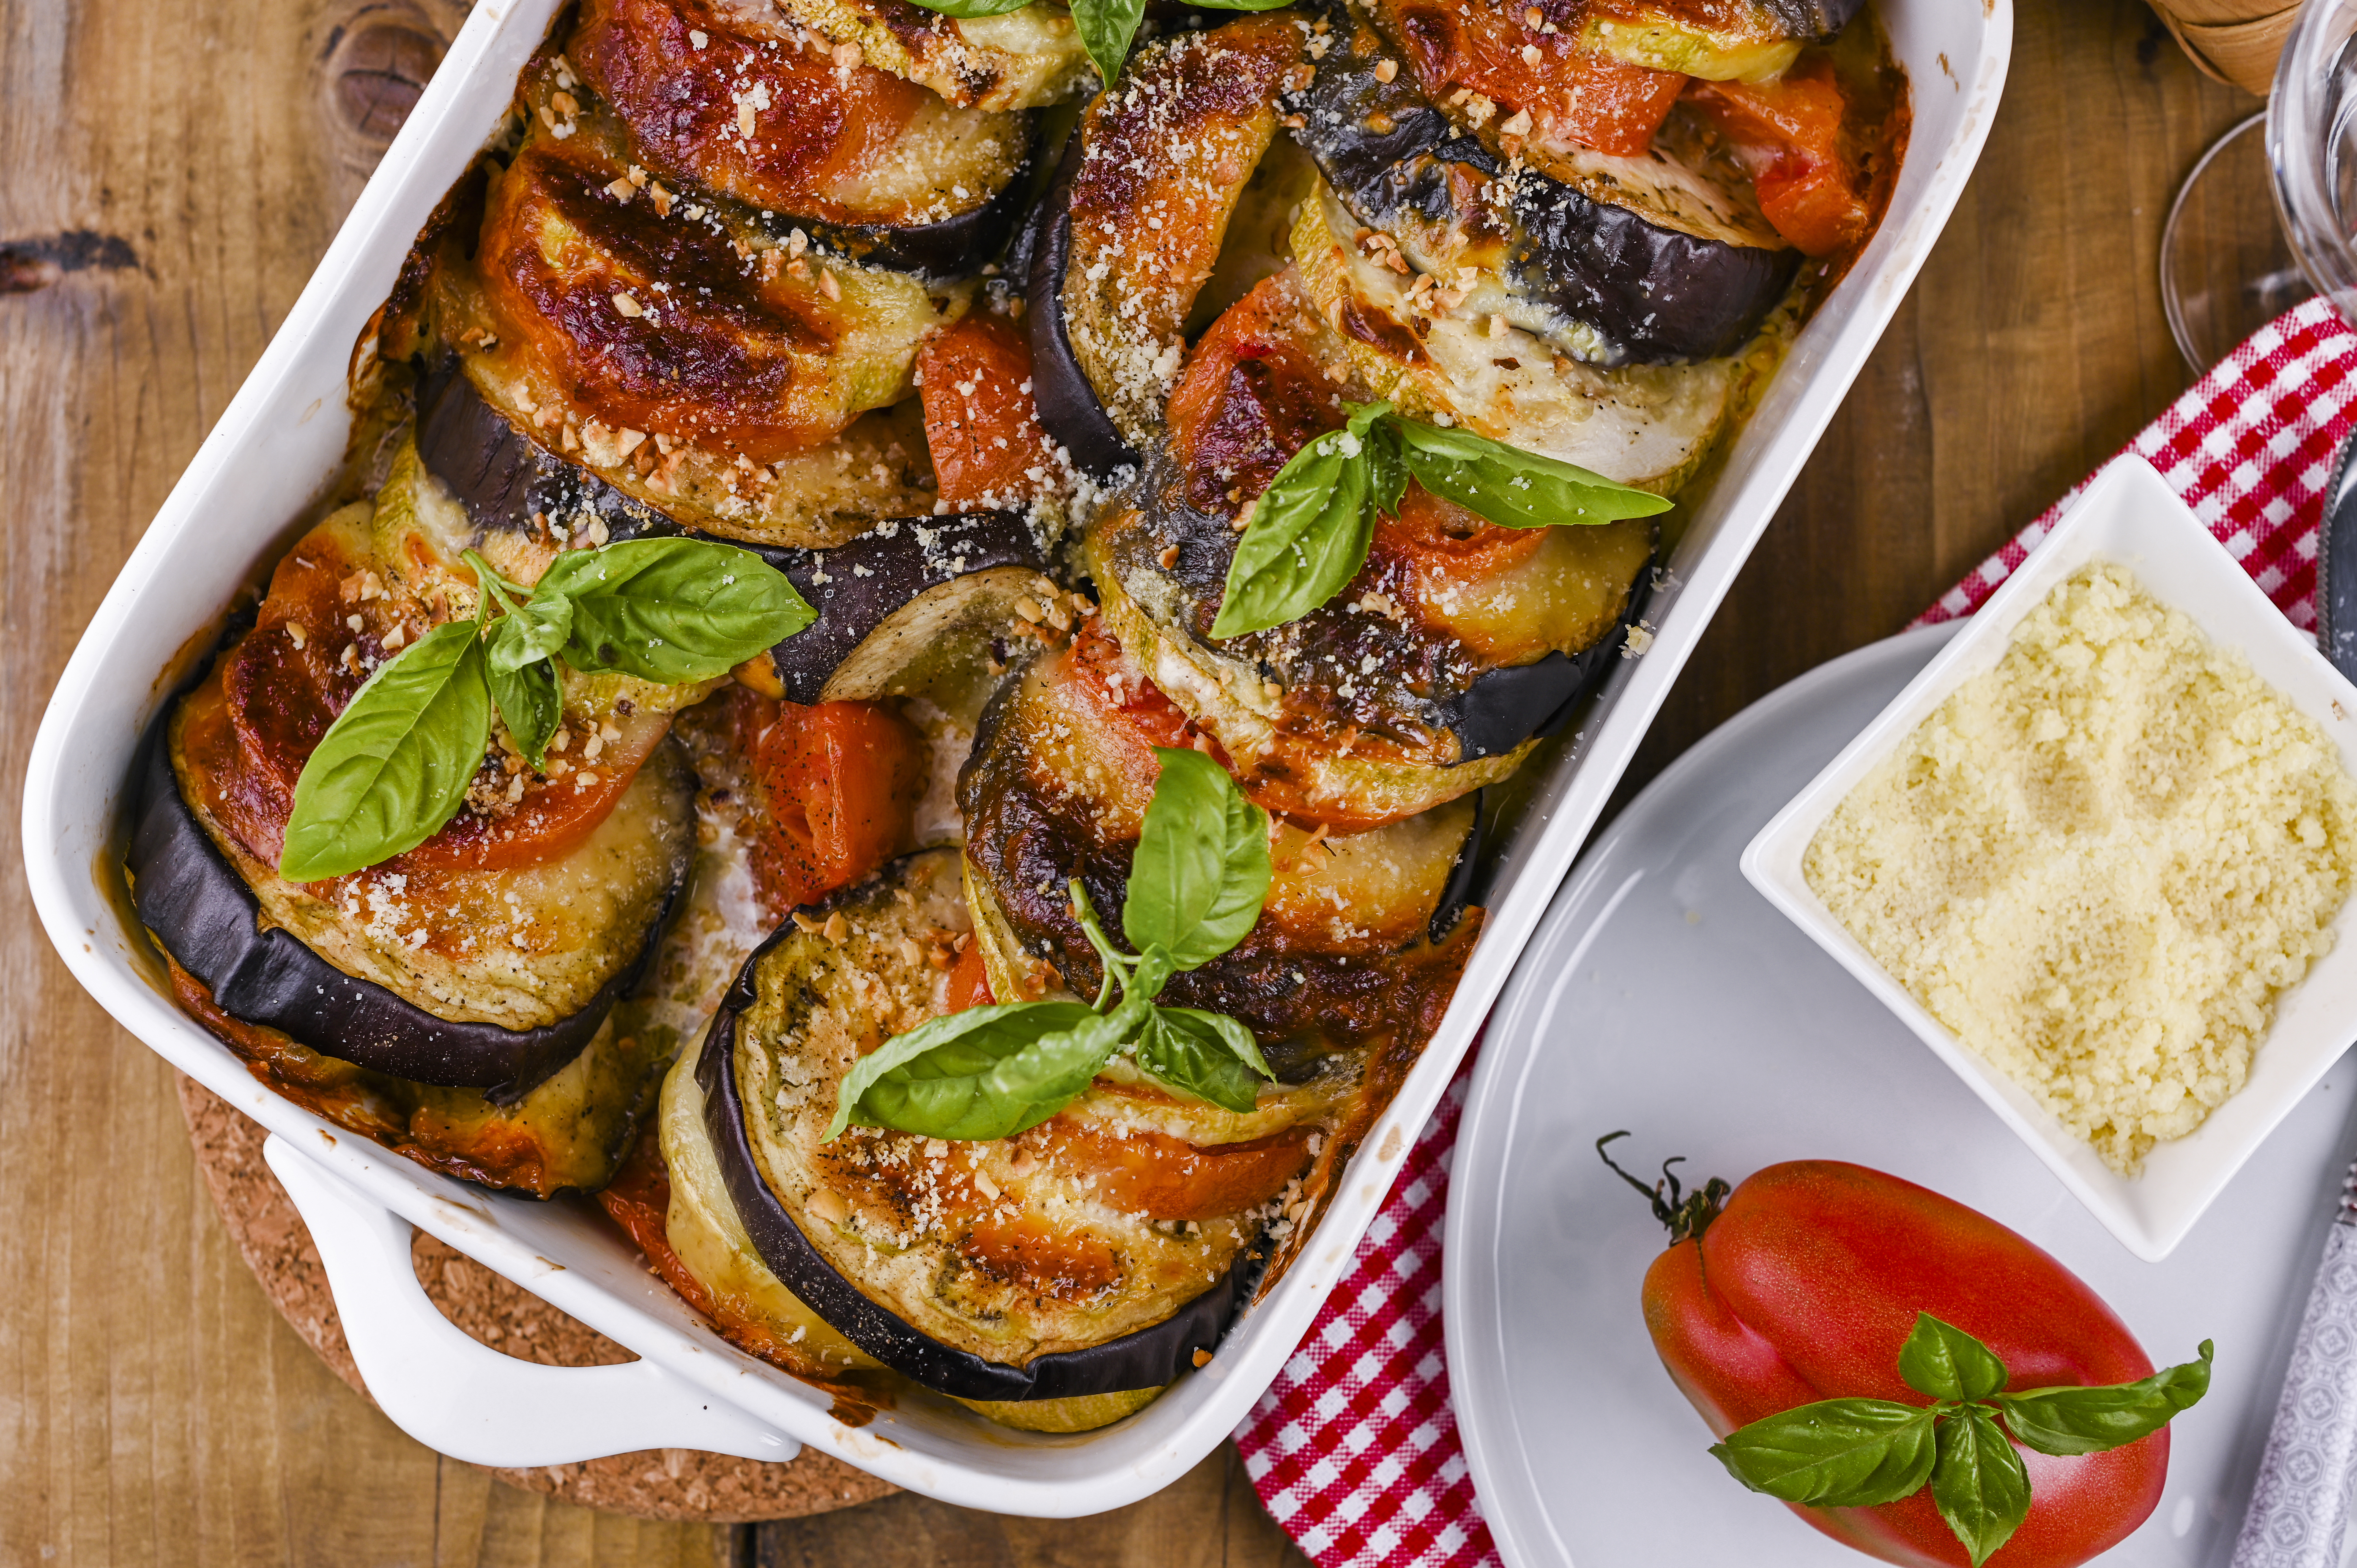 Traditional italian food. Baked eggplant, tomatoes with sauce, parmesan and basil. Rustic food for a healthy diet. Vegetables for lunch.